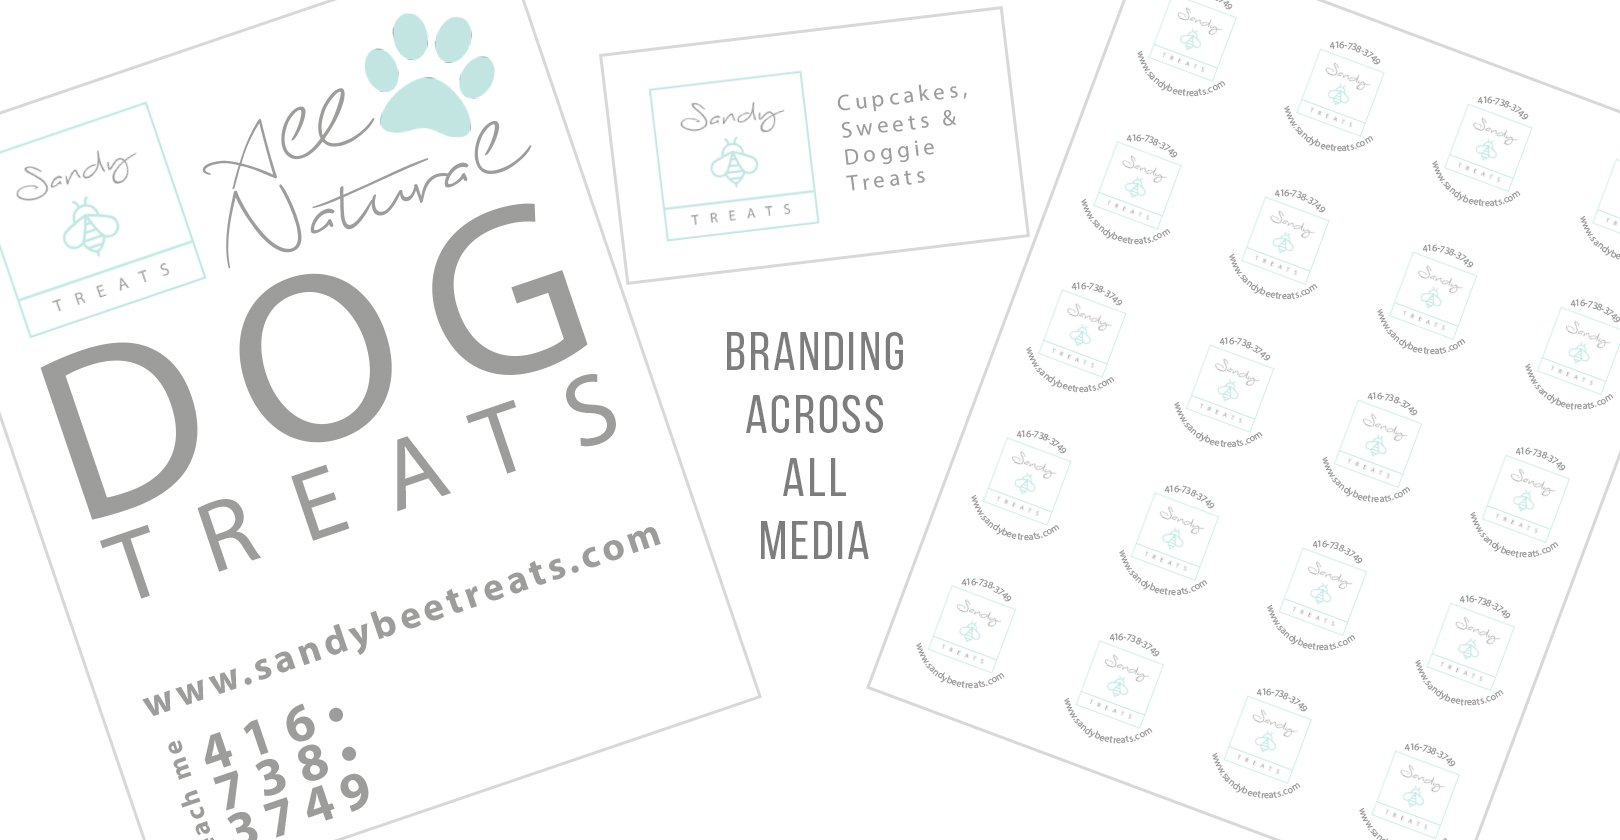 Branding – Sandy Bee Treats